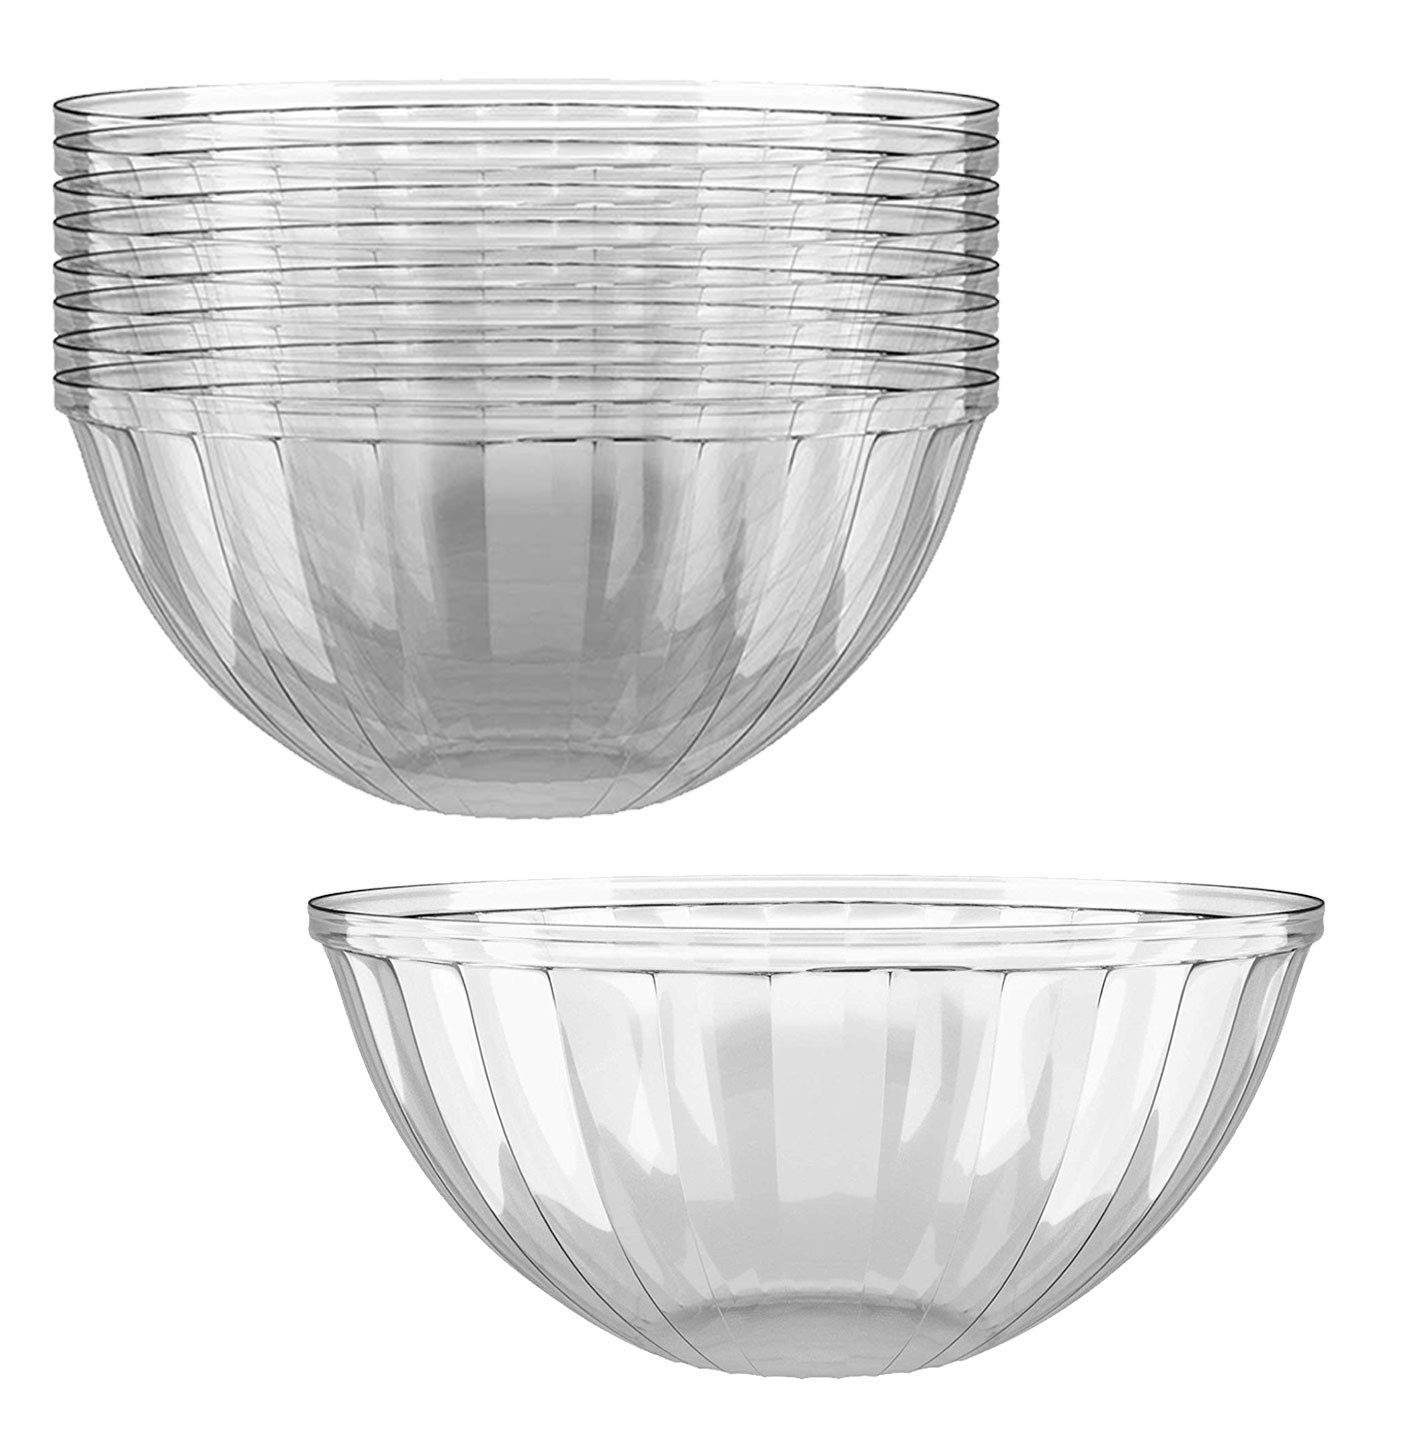 Clear Plastic Serving Bowls for Parties | 48 Oz. 12 Pack | Round Disposable Serving Bowls | Clear Chip Bowls | Party Snack Bowls | Plastic Candy Dish | Salad Serving Containers | Large Candy Bowls